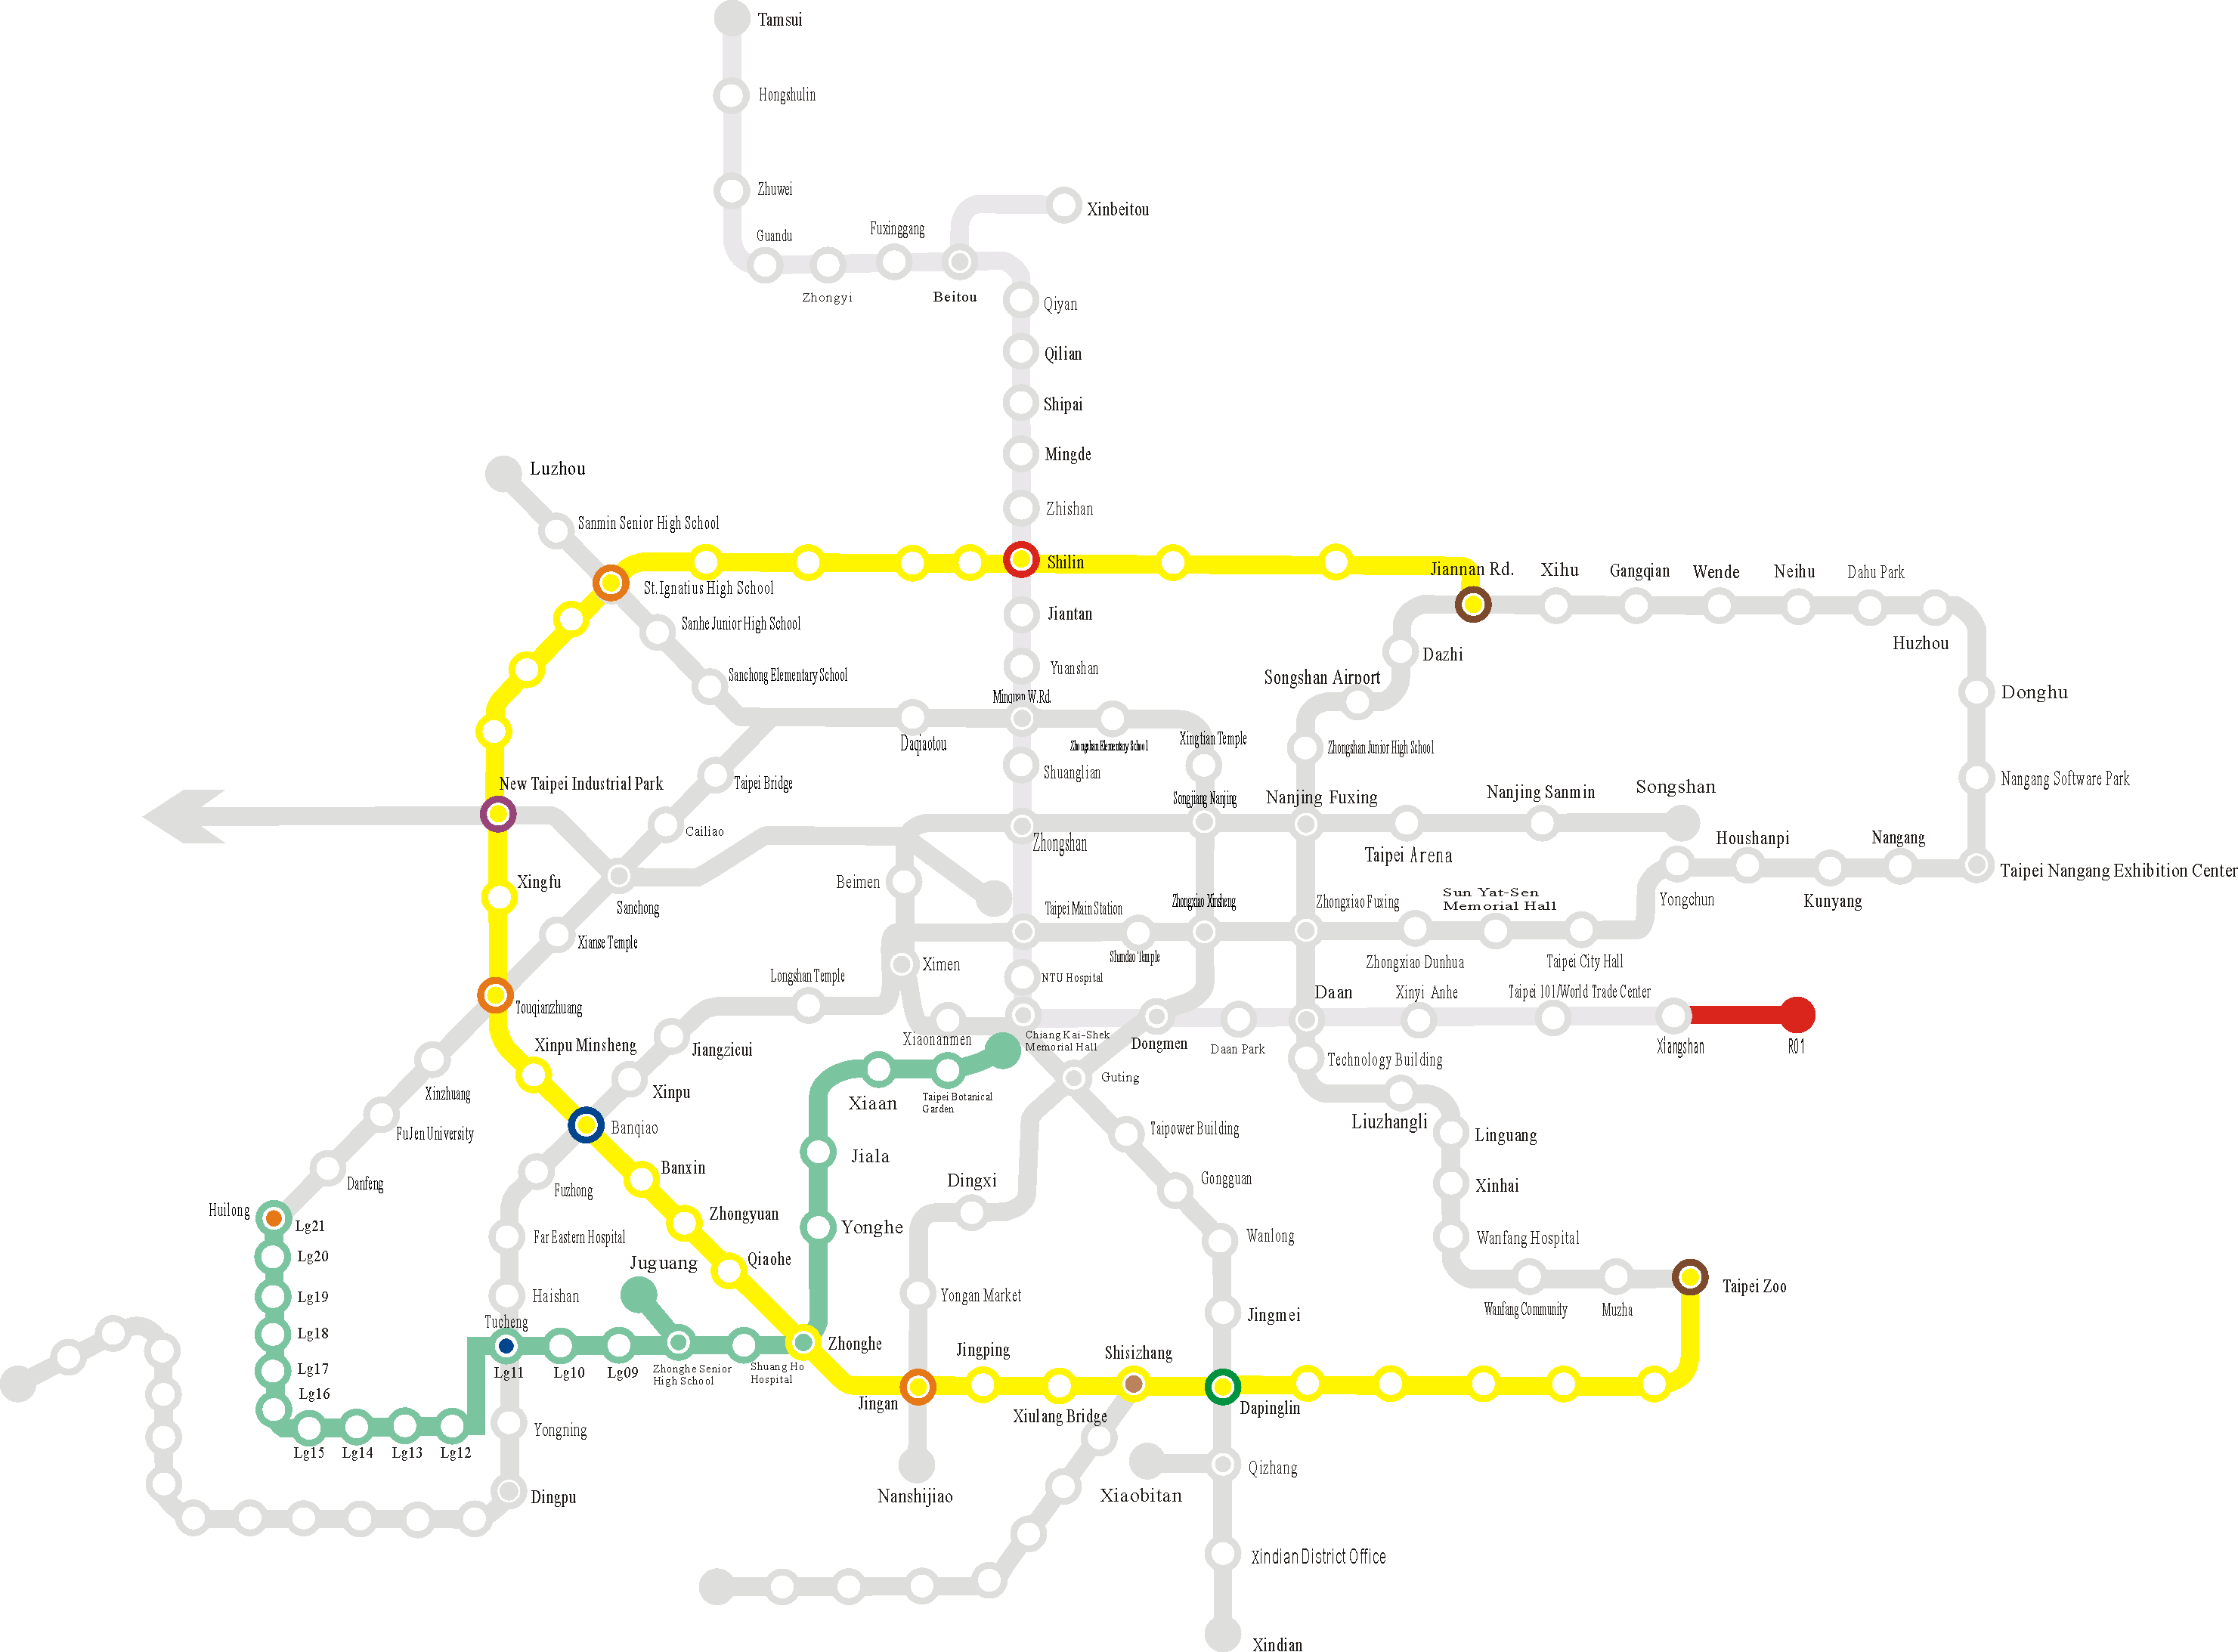 Approved MRT Routes, gif download, opened with new window.